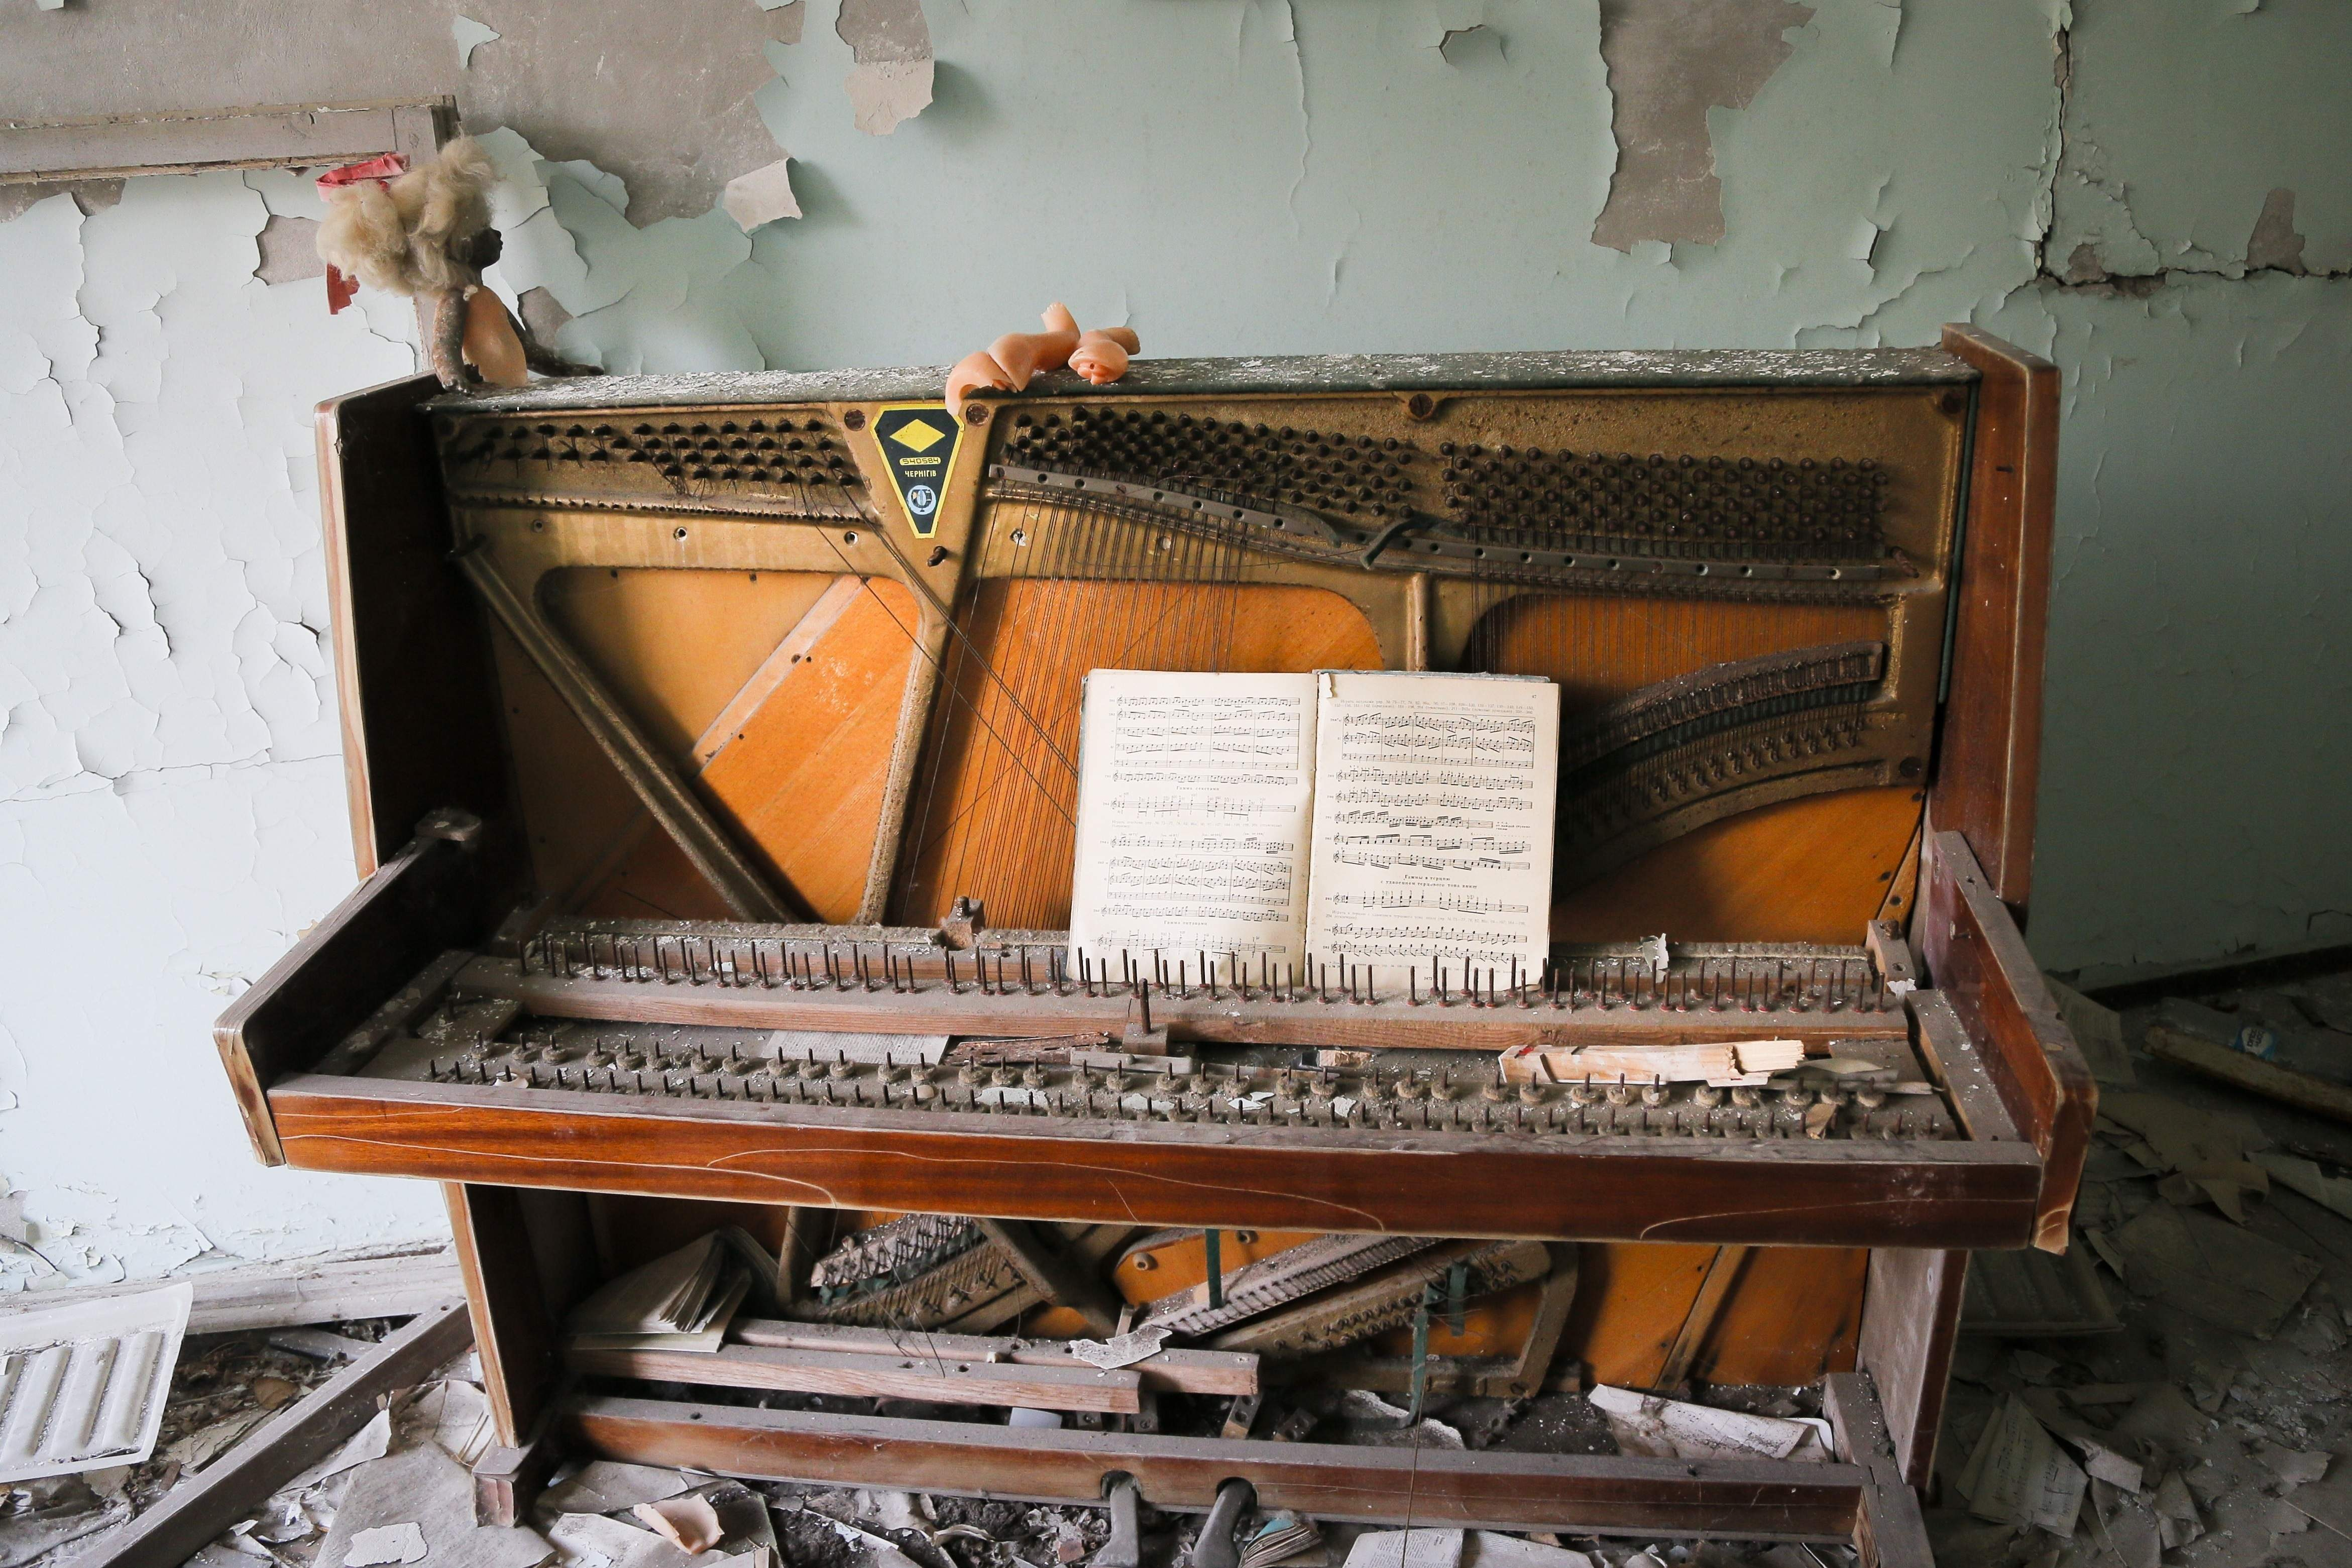 In this photo taken Wednesday, April 5, 2017, a decrepit piano stands in a school in the deserted town of Pripyat, some 3 kilometers (1.86 miles) from the Chernobyl nuclear power plant Ukraine. Once home to some 50,000 people whose lives were connected to the Chernobyl nuclear power plant, Pripyat was hastily evacuated one day after a reactor at the plant 3 kilometers (2 miles away) exploded on April 26, 1986. The explosion and the subsequent fire spewed a radioactive plume over much of northern Europe. THE ASSOCIATED PRESS